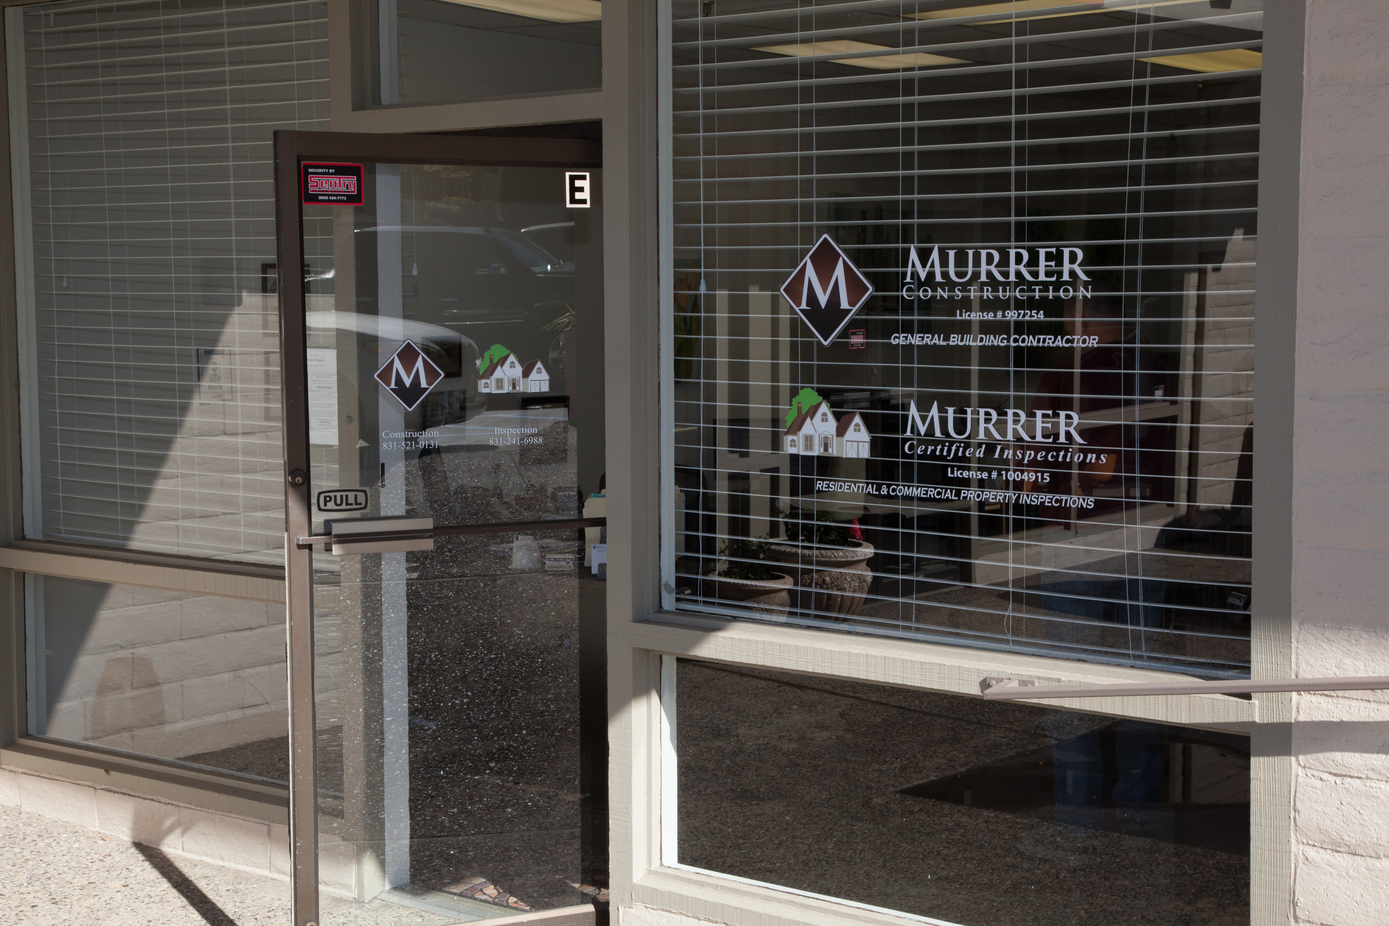 Murrer Construction's New Office